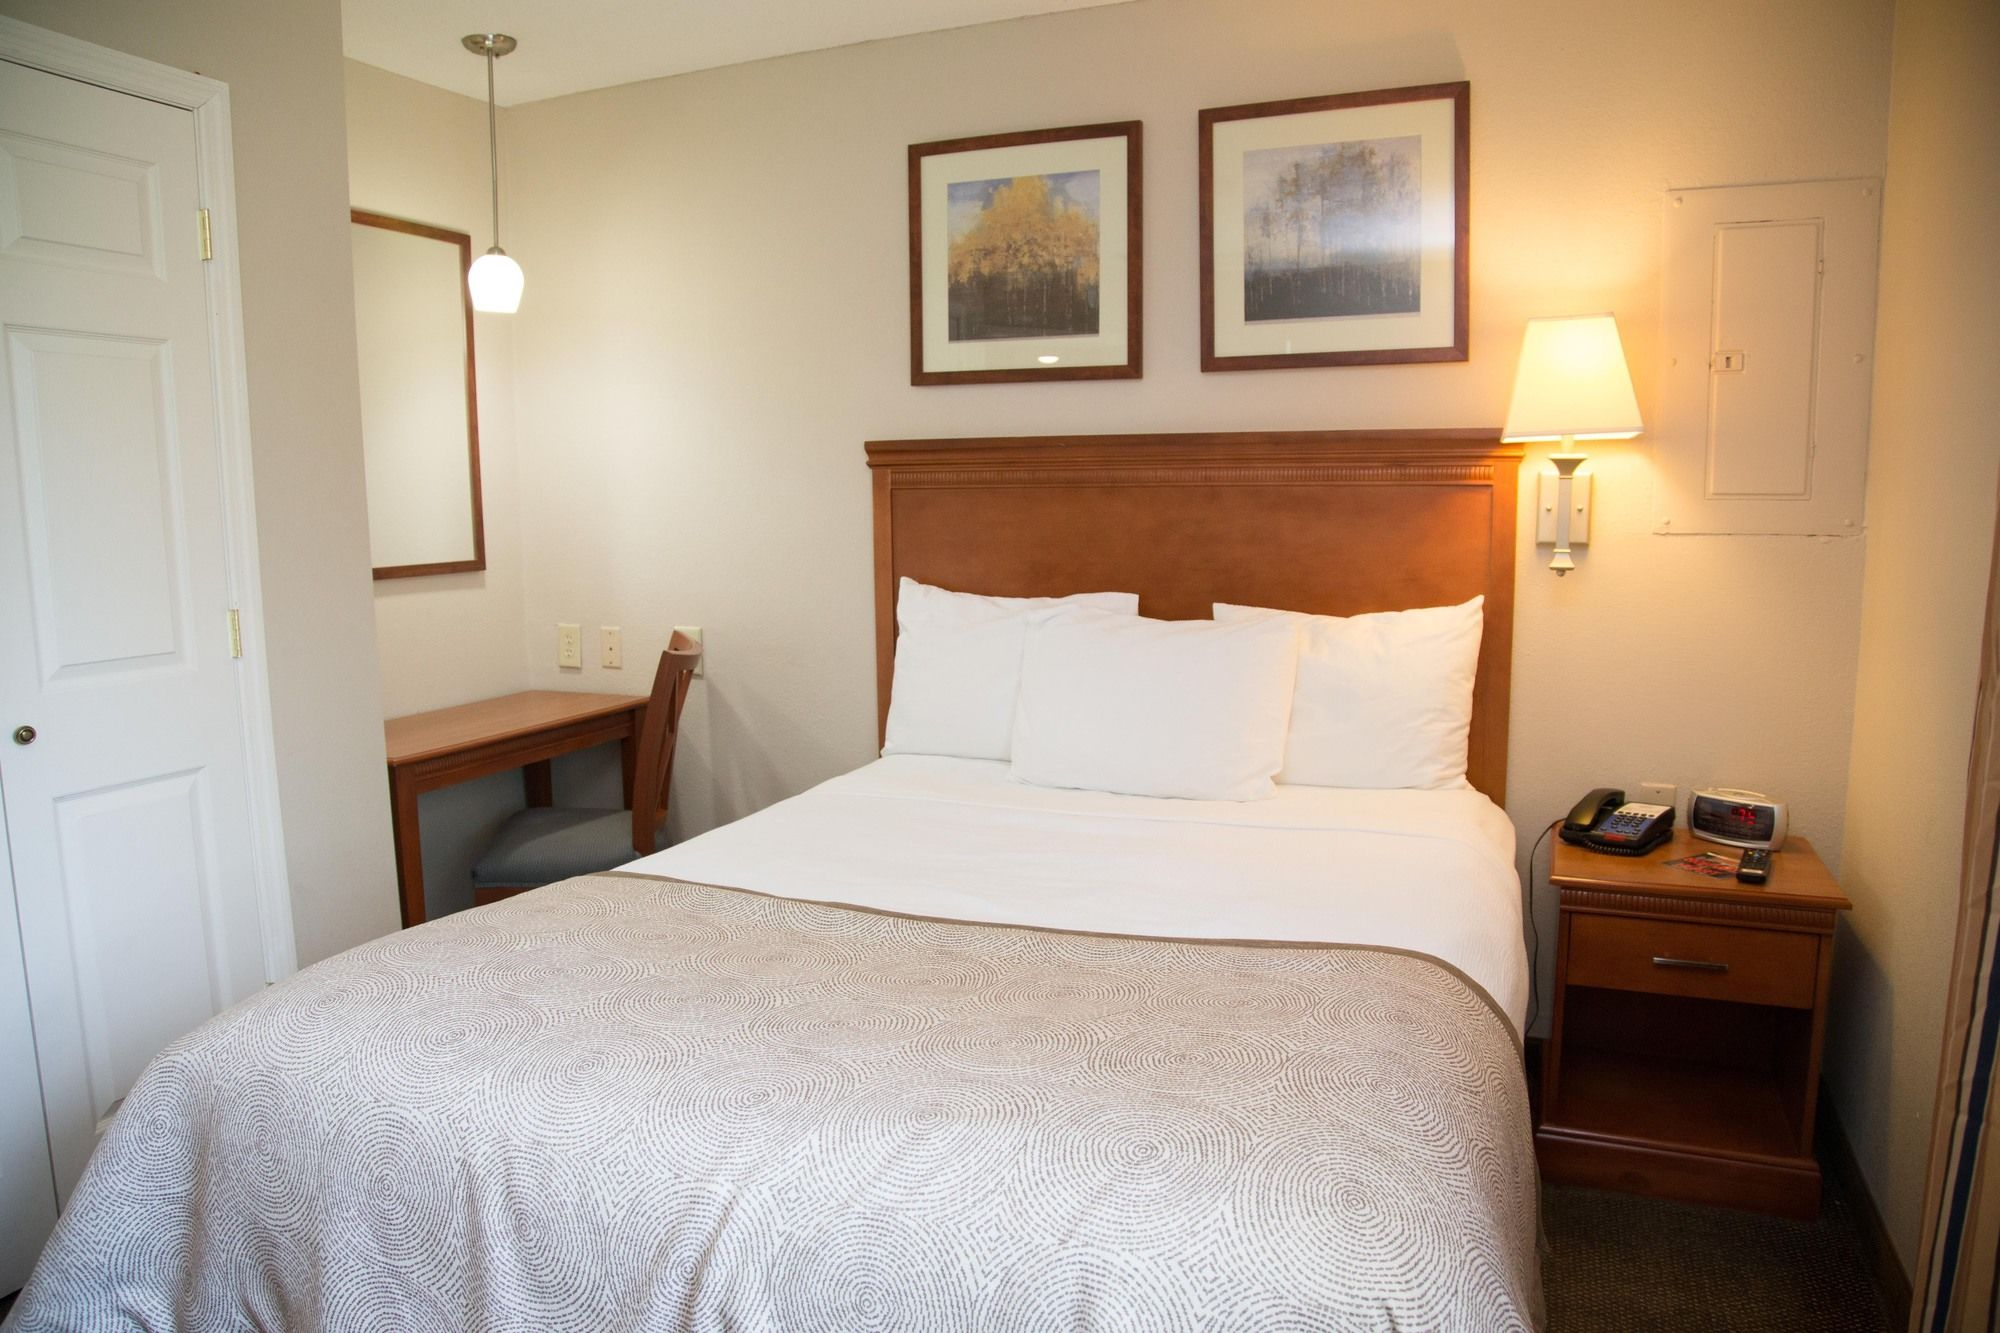 Candlewood Suites Huntersville in Huntersville, NC